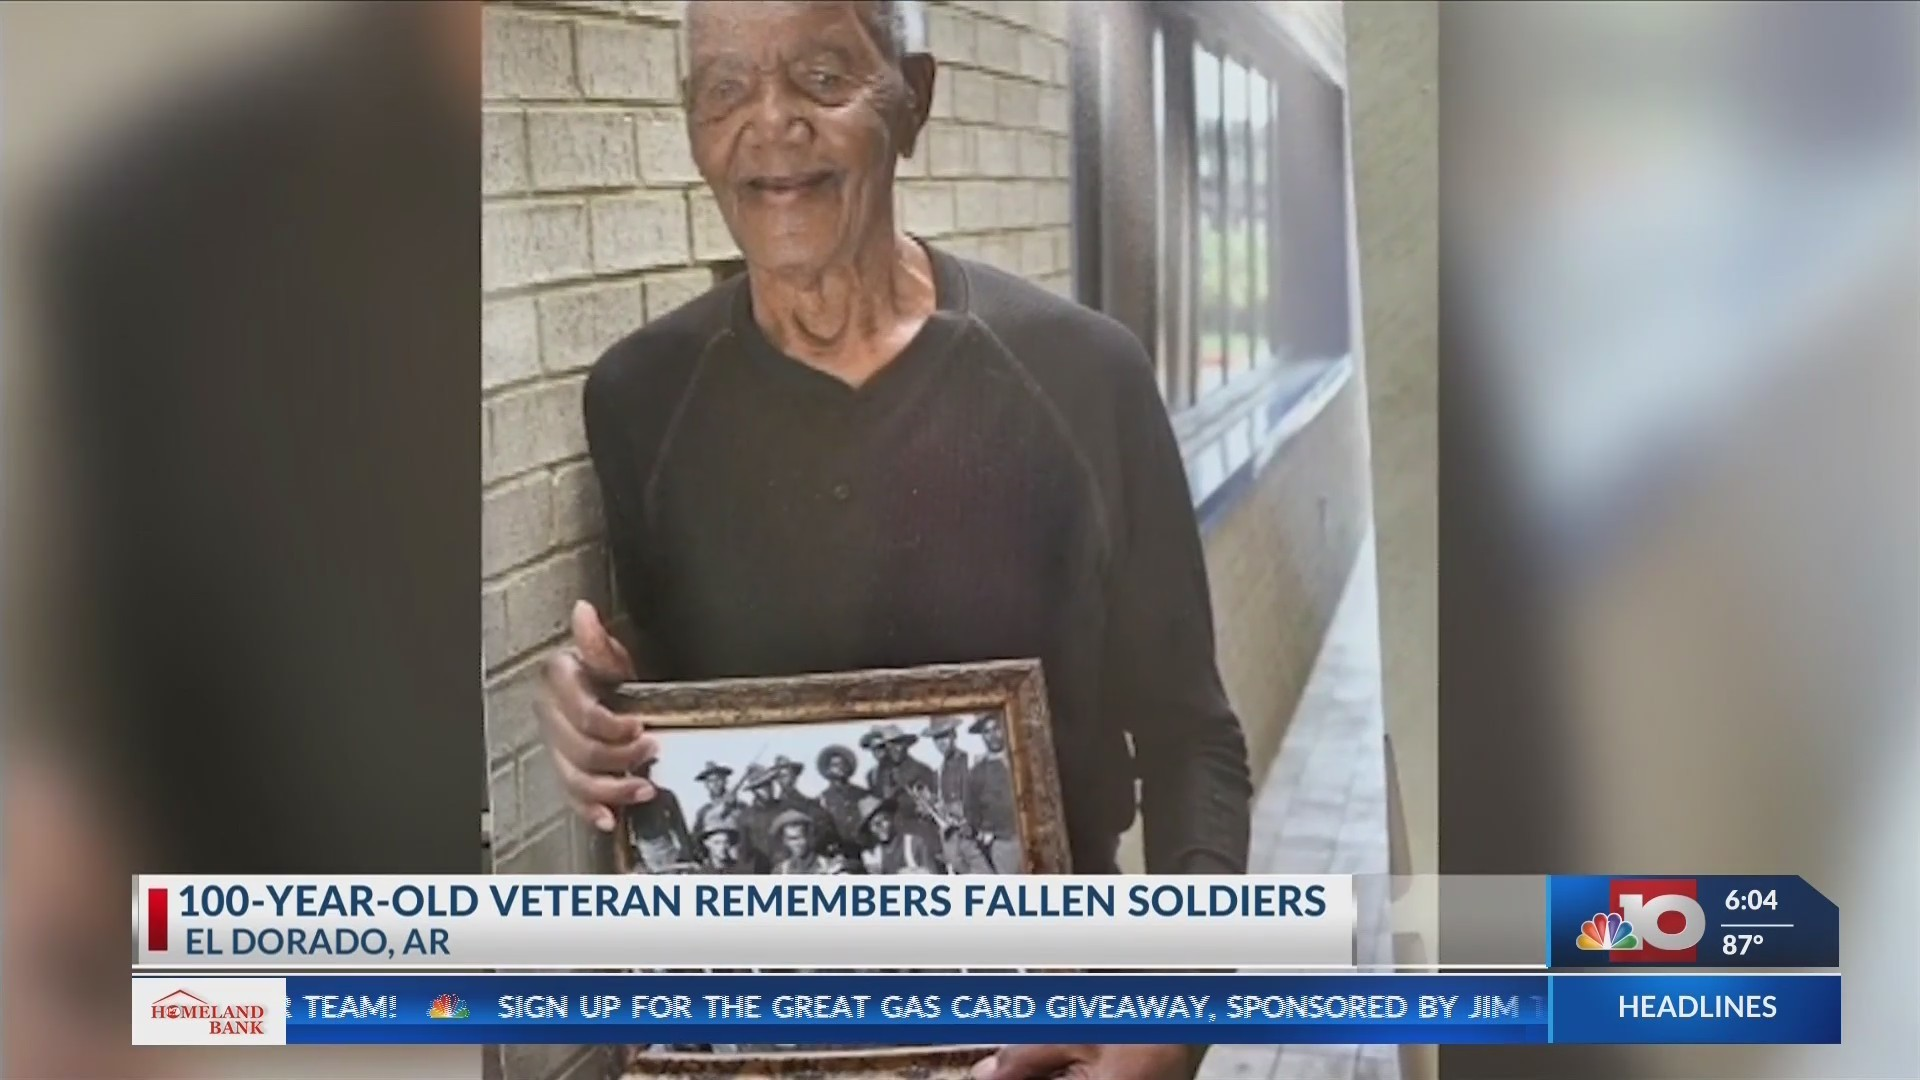 As another Memorial Day comes to a close, one Worl War II Veteran is reflecting on his war experiences and the comrades who have gone on before him.